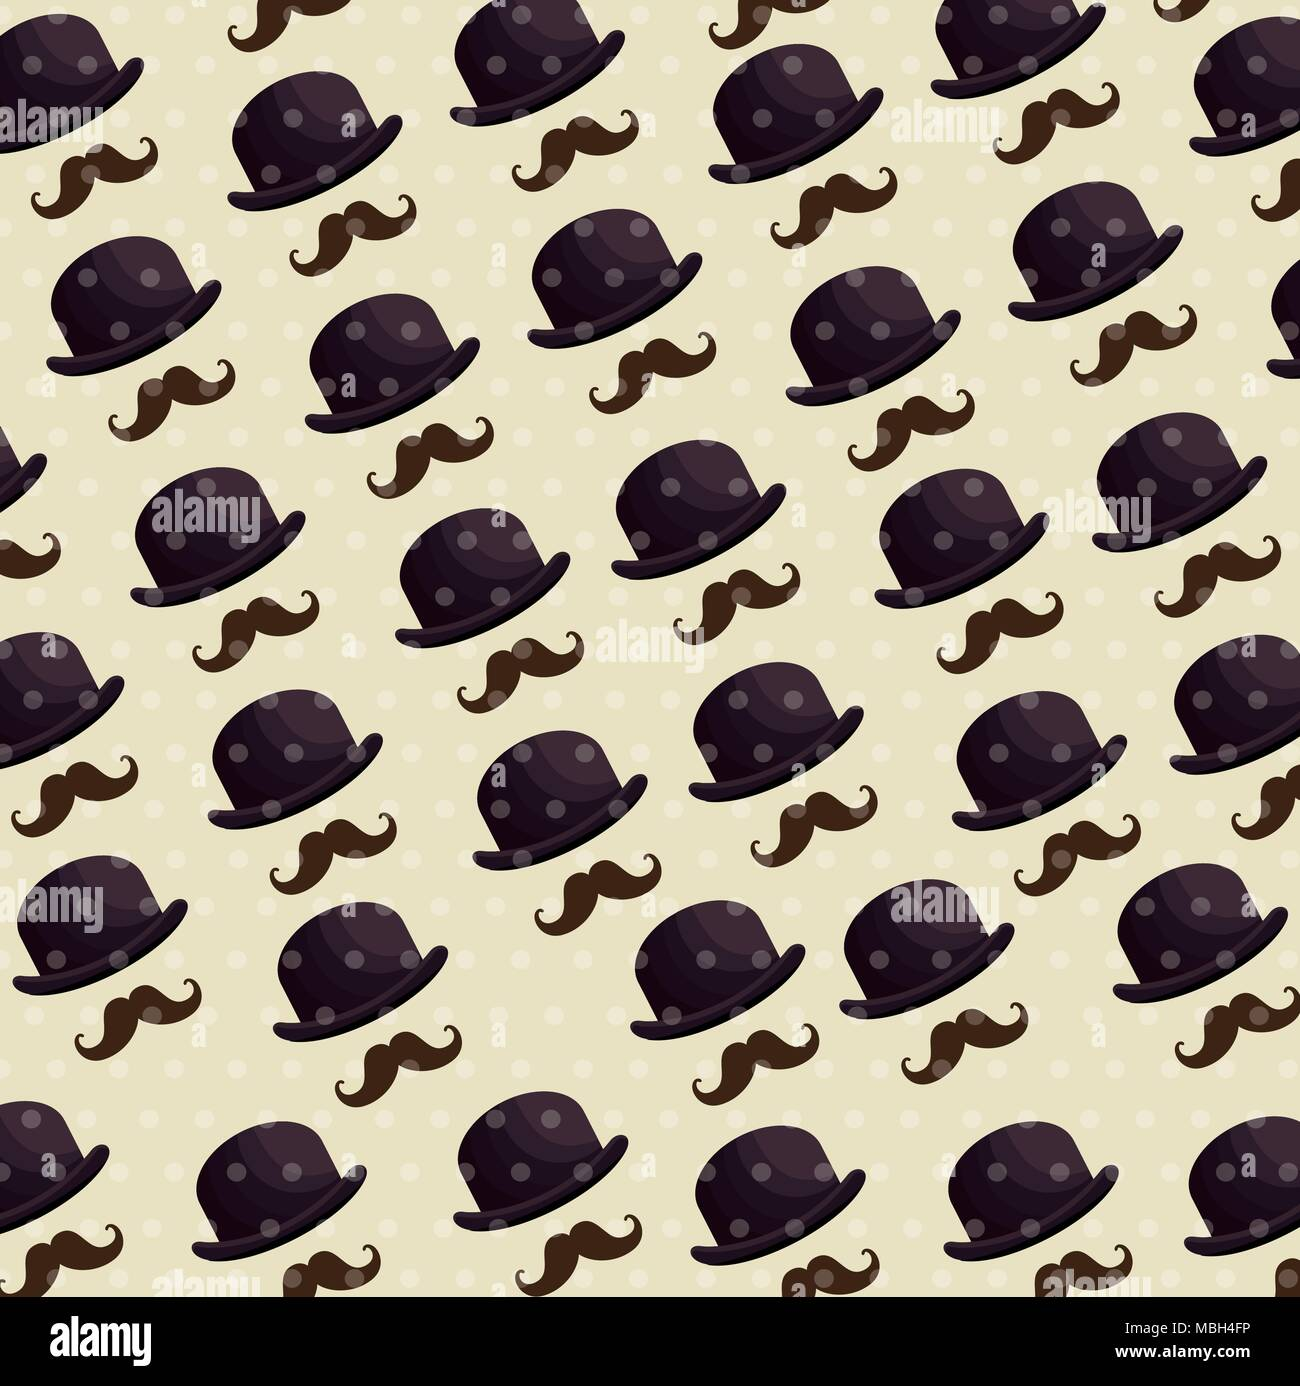 hat and mustache pattern background - Stock Image